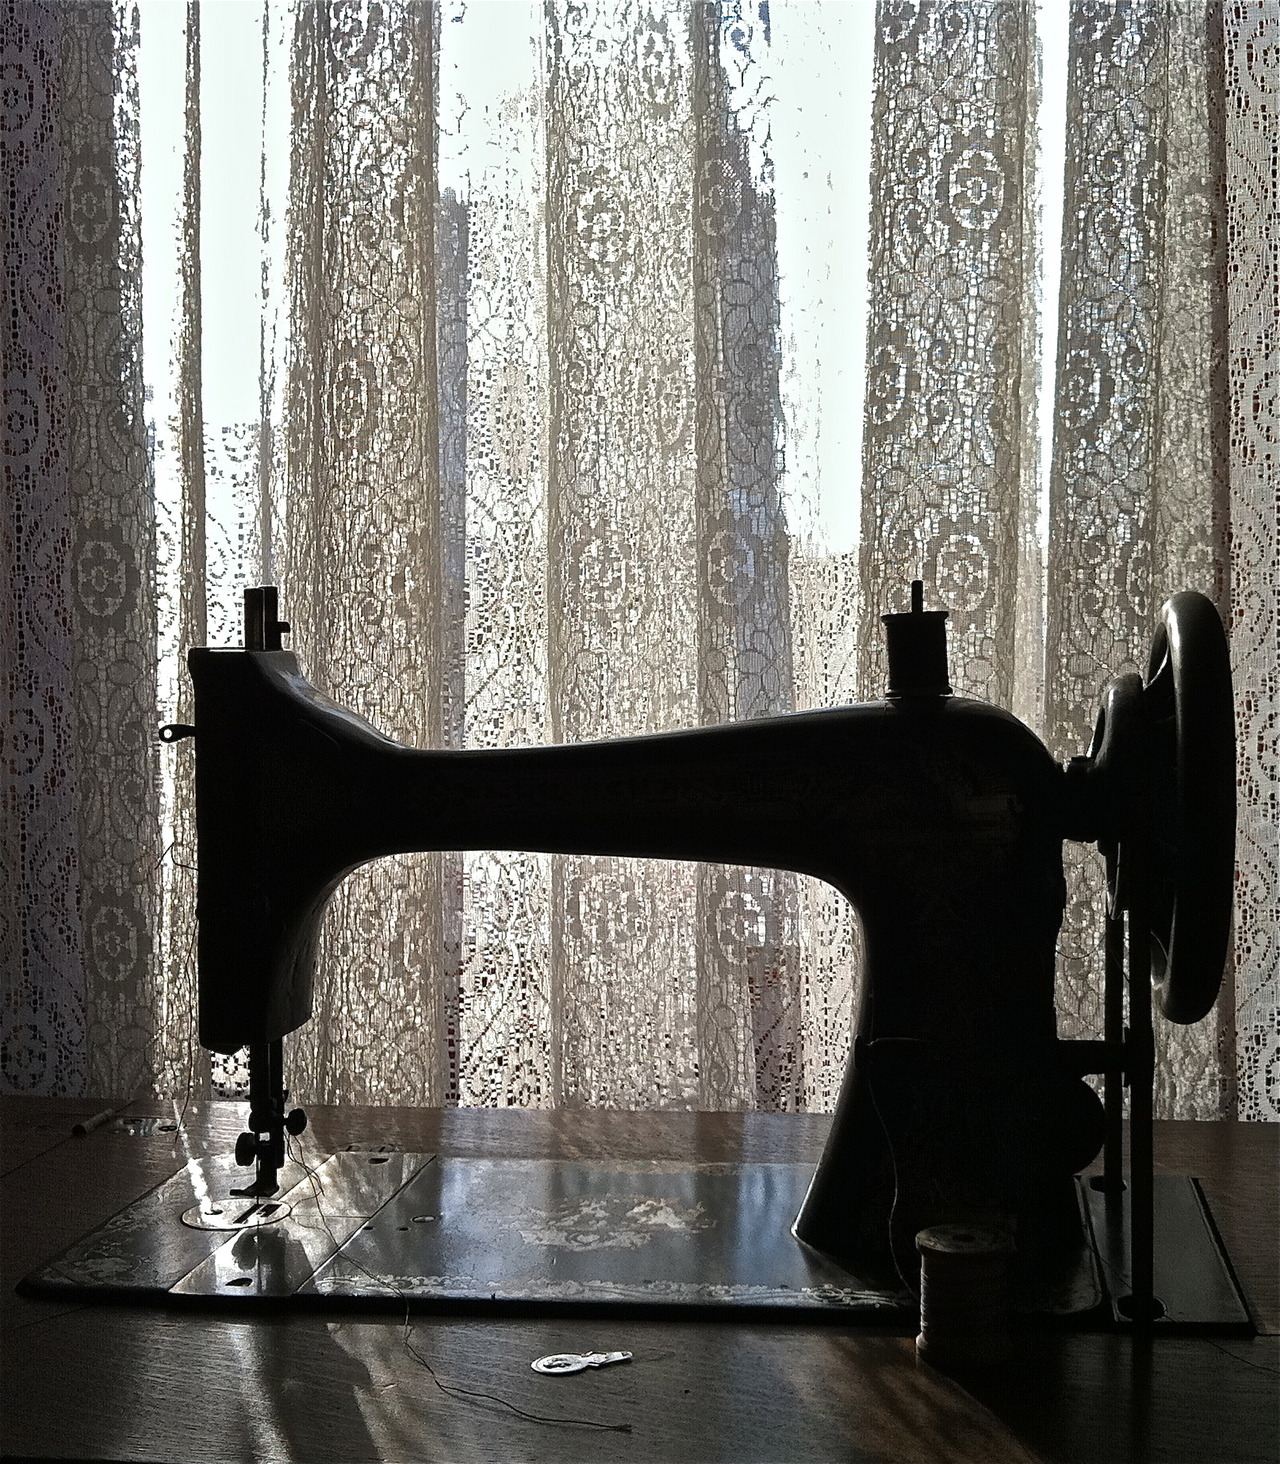 Domestic Art Silhouette of a late 19th century Singer sewing machine at the Rosson House Museum, an 1895 brick mansion in downtown Phoenix, AZ.